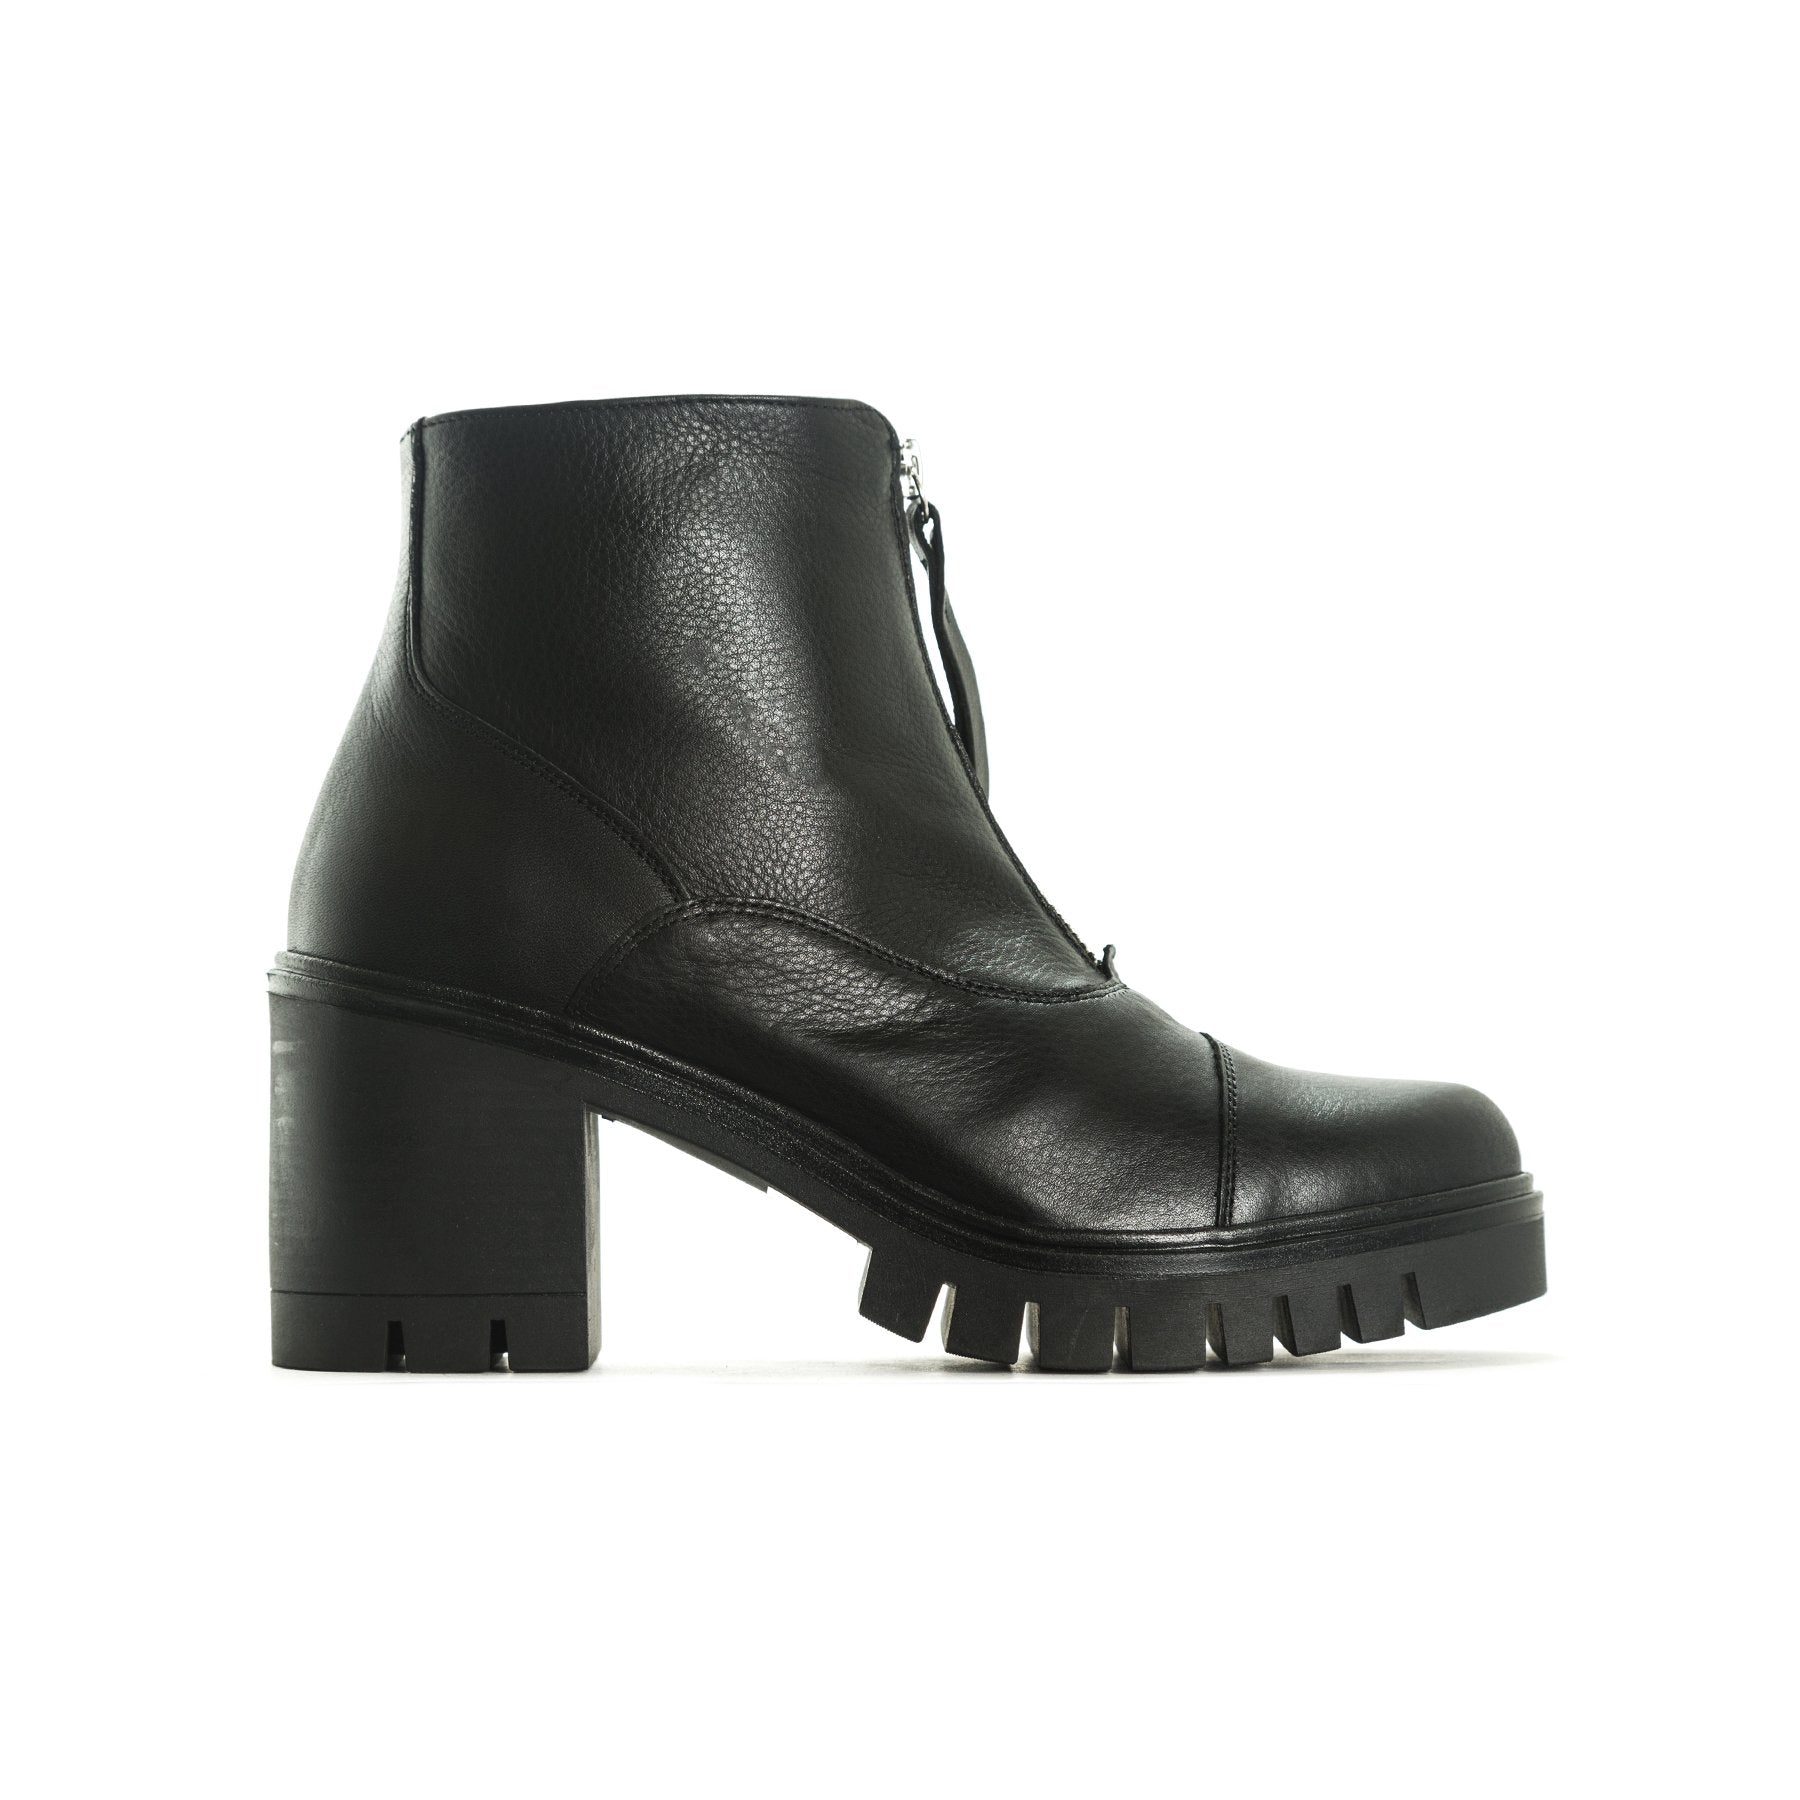 Radcliff Black Leather Platforms